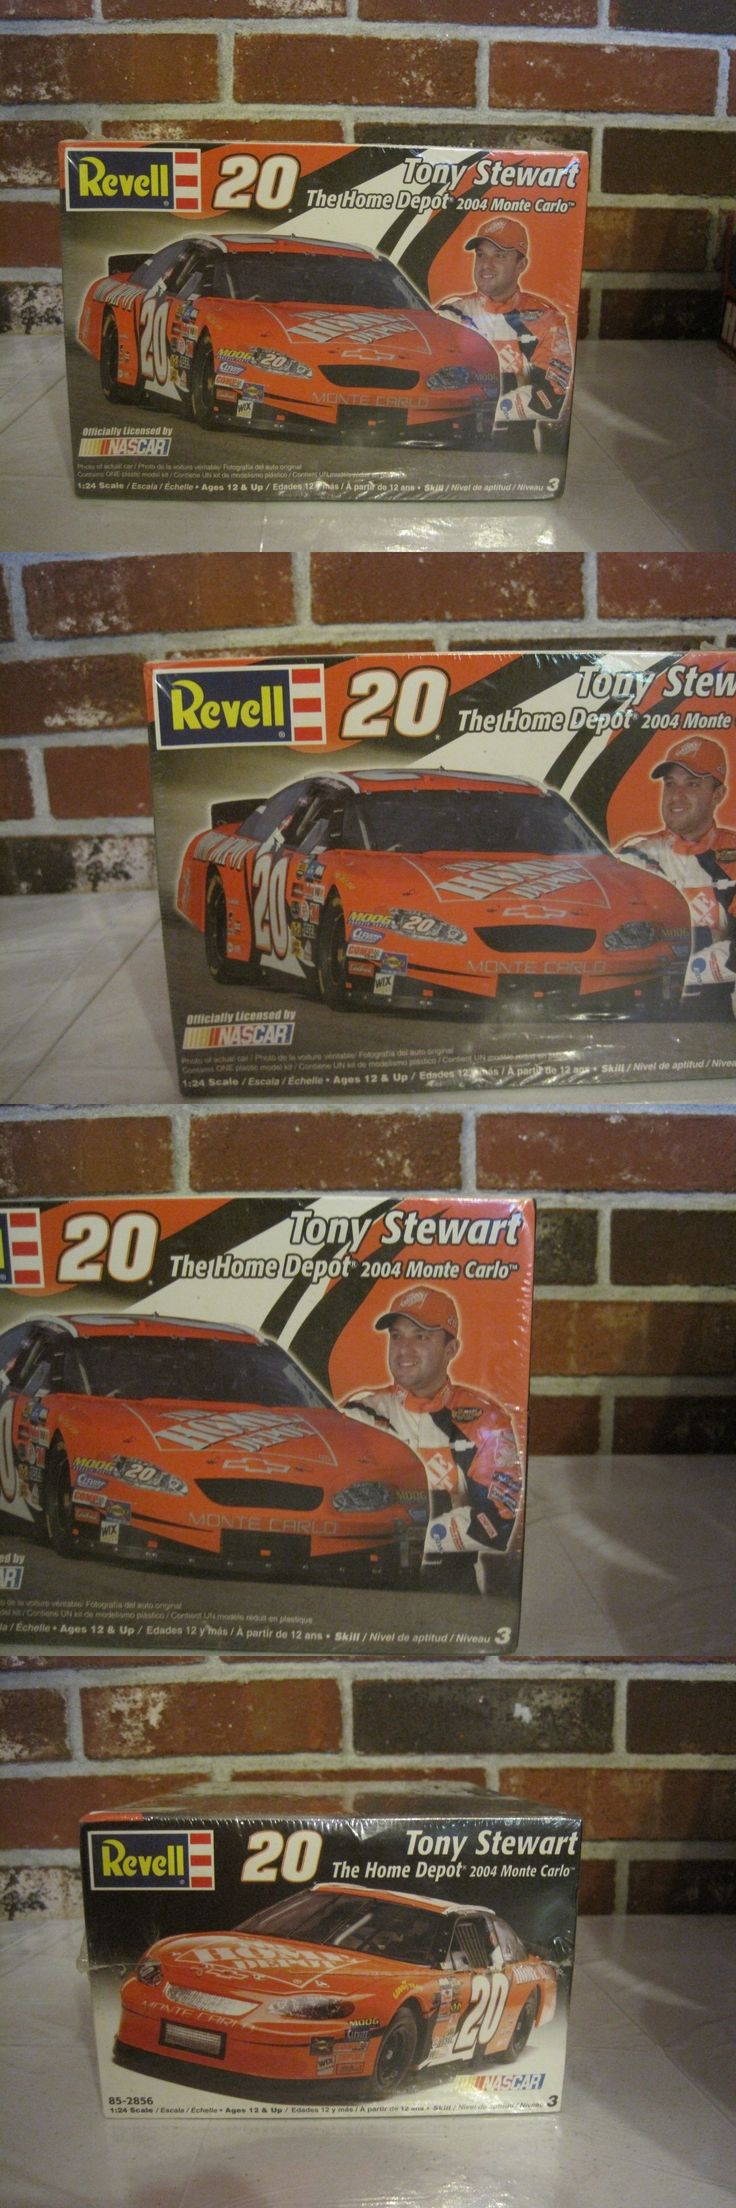 Kits 145964: 2004 Revell #20 Tony Stewart Monte Carlo Model Car The Home Depot--Nascar--New -> BUY IT NOW ONLY: $94.99 on eBay!